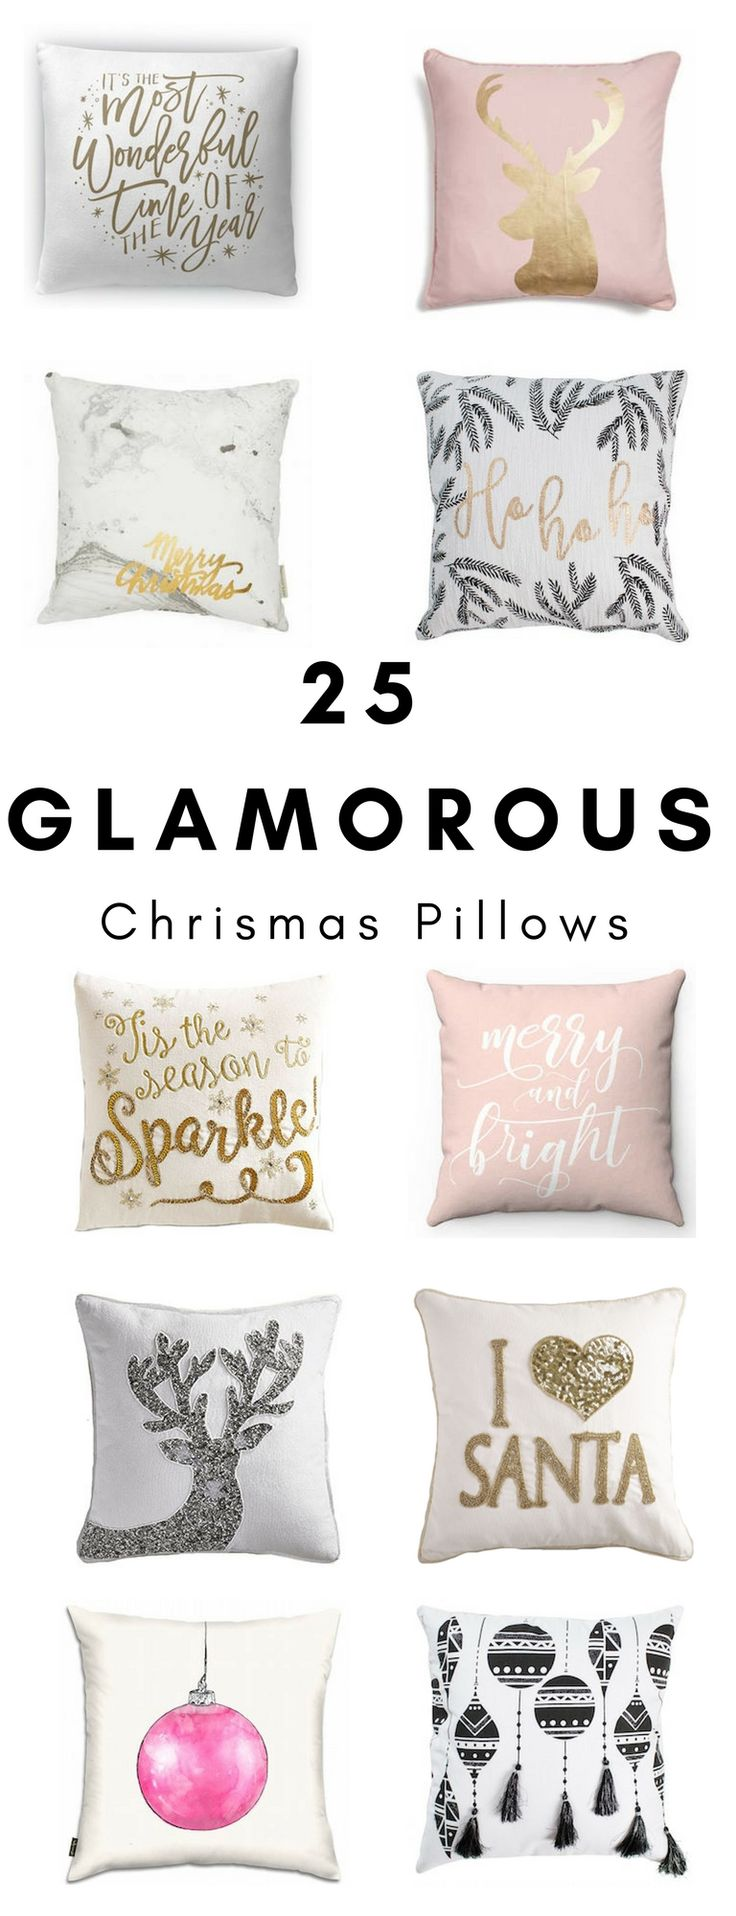 25 glamorous Christmas pillows are now on the blog! Come check out these festive holiday pillows! They'll add some wow factor to your Christmas decor!